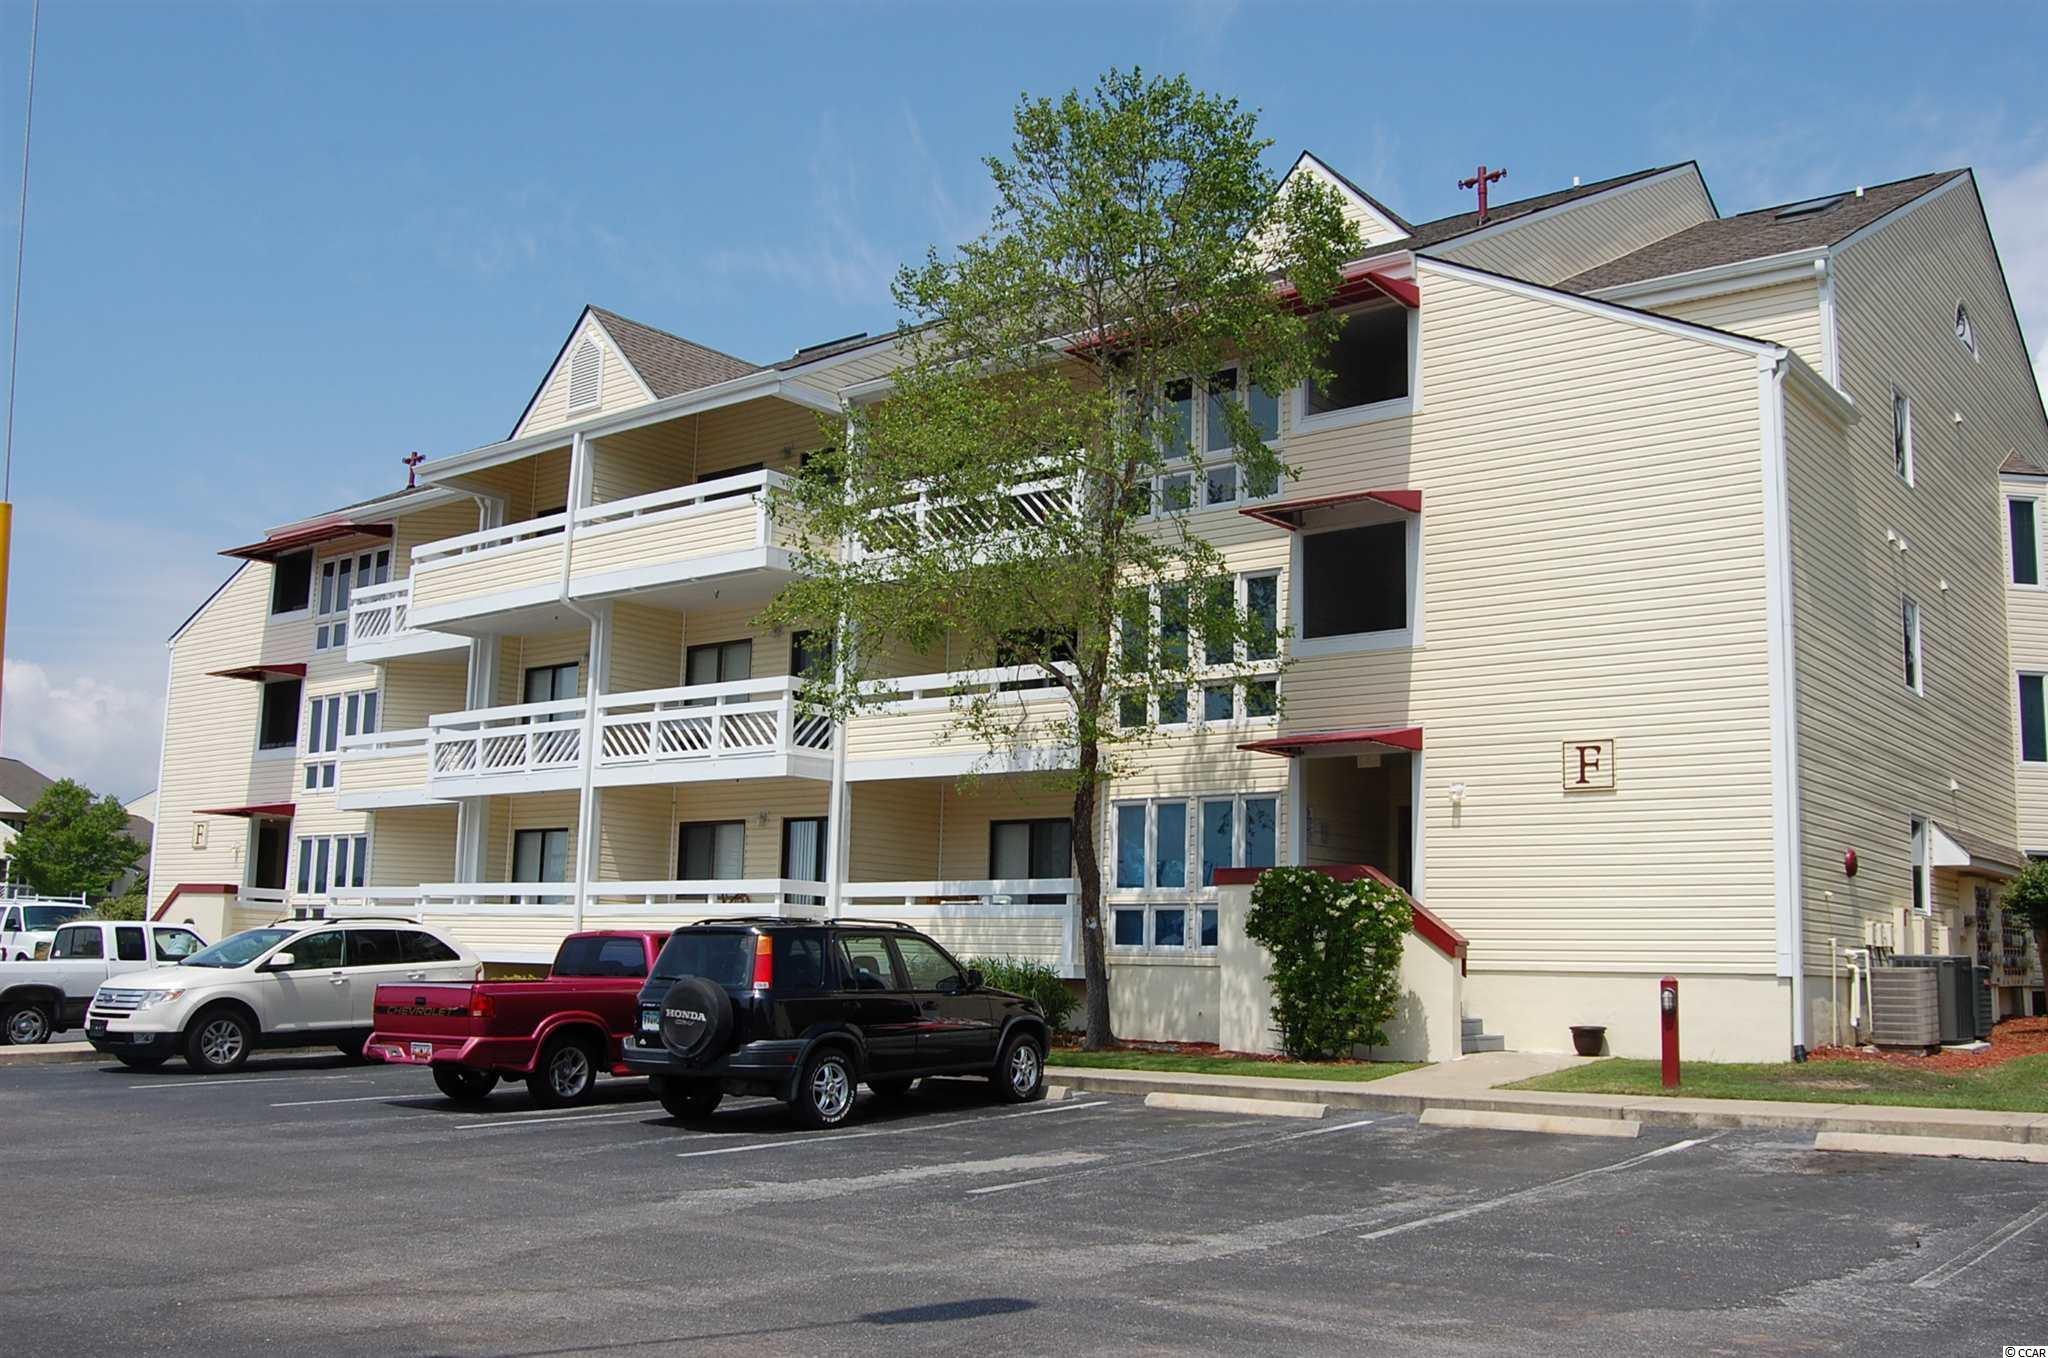 NMB G&T Eff/1 BA condo on 1st floor!  Comes furnished.  Community offers outdoor pool and tennis.  Close to community center, parks, fine dining & just a short drive to the beach!